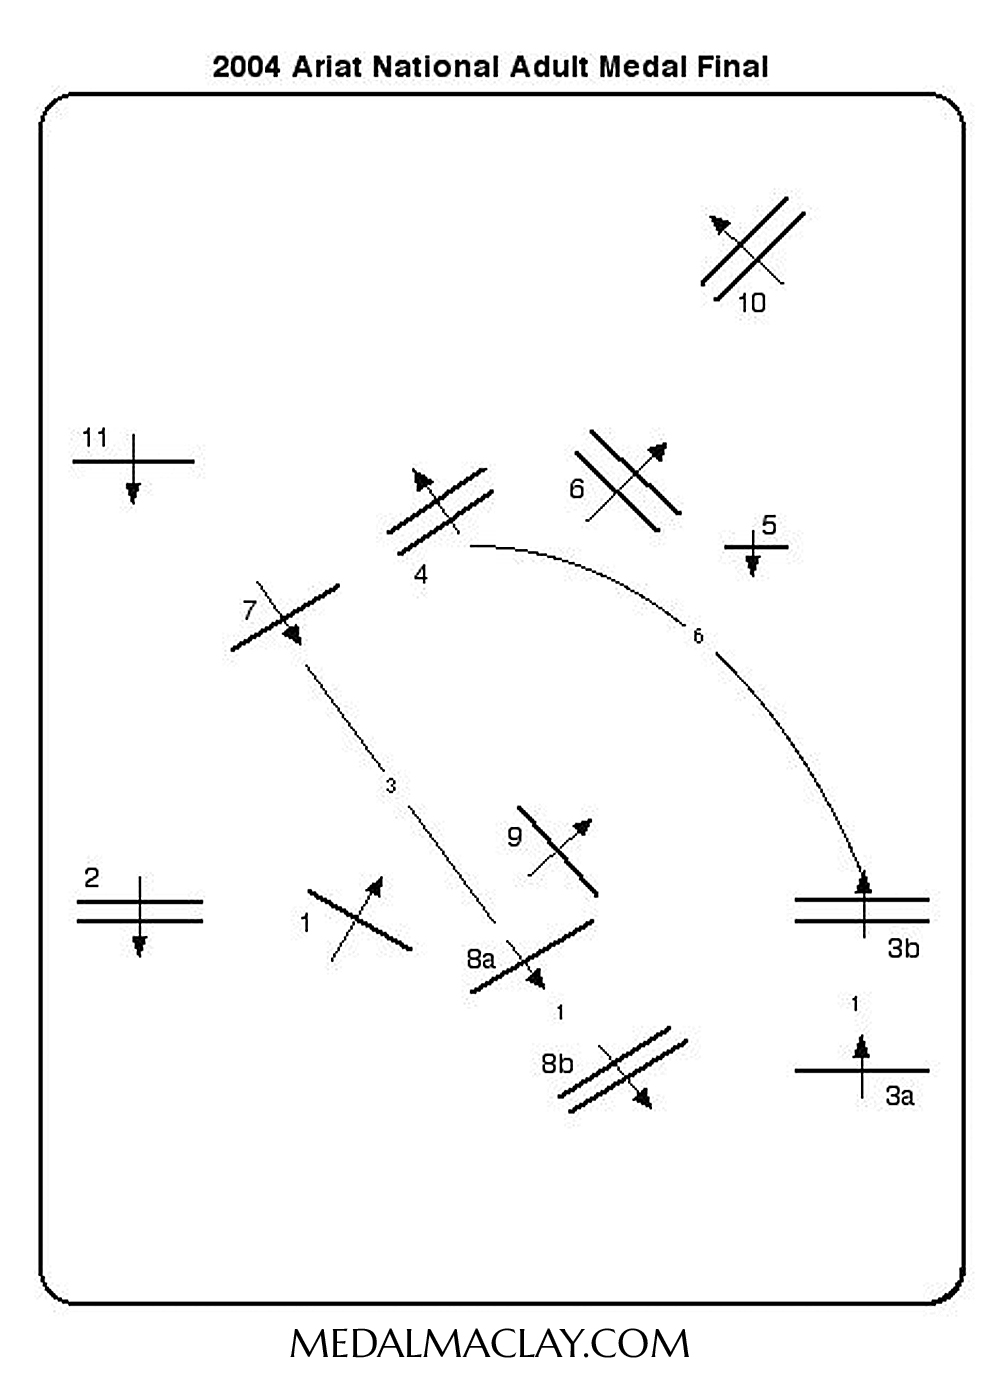 2004 National Adult Medal Round 1 Course